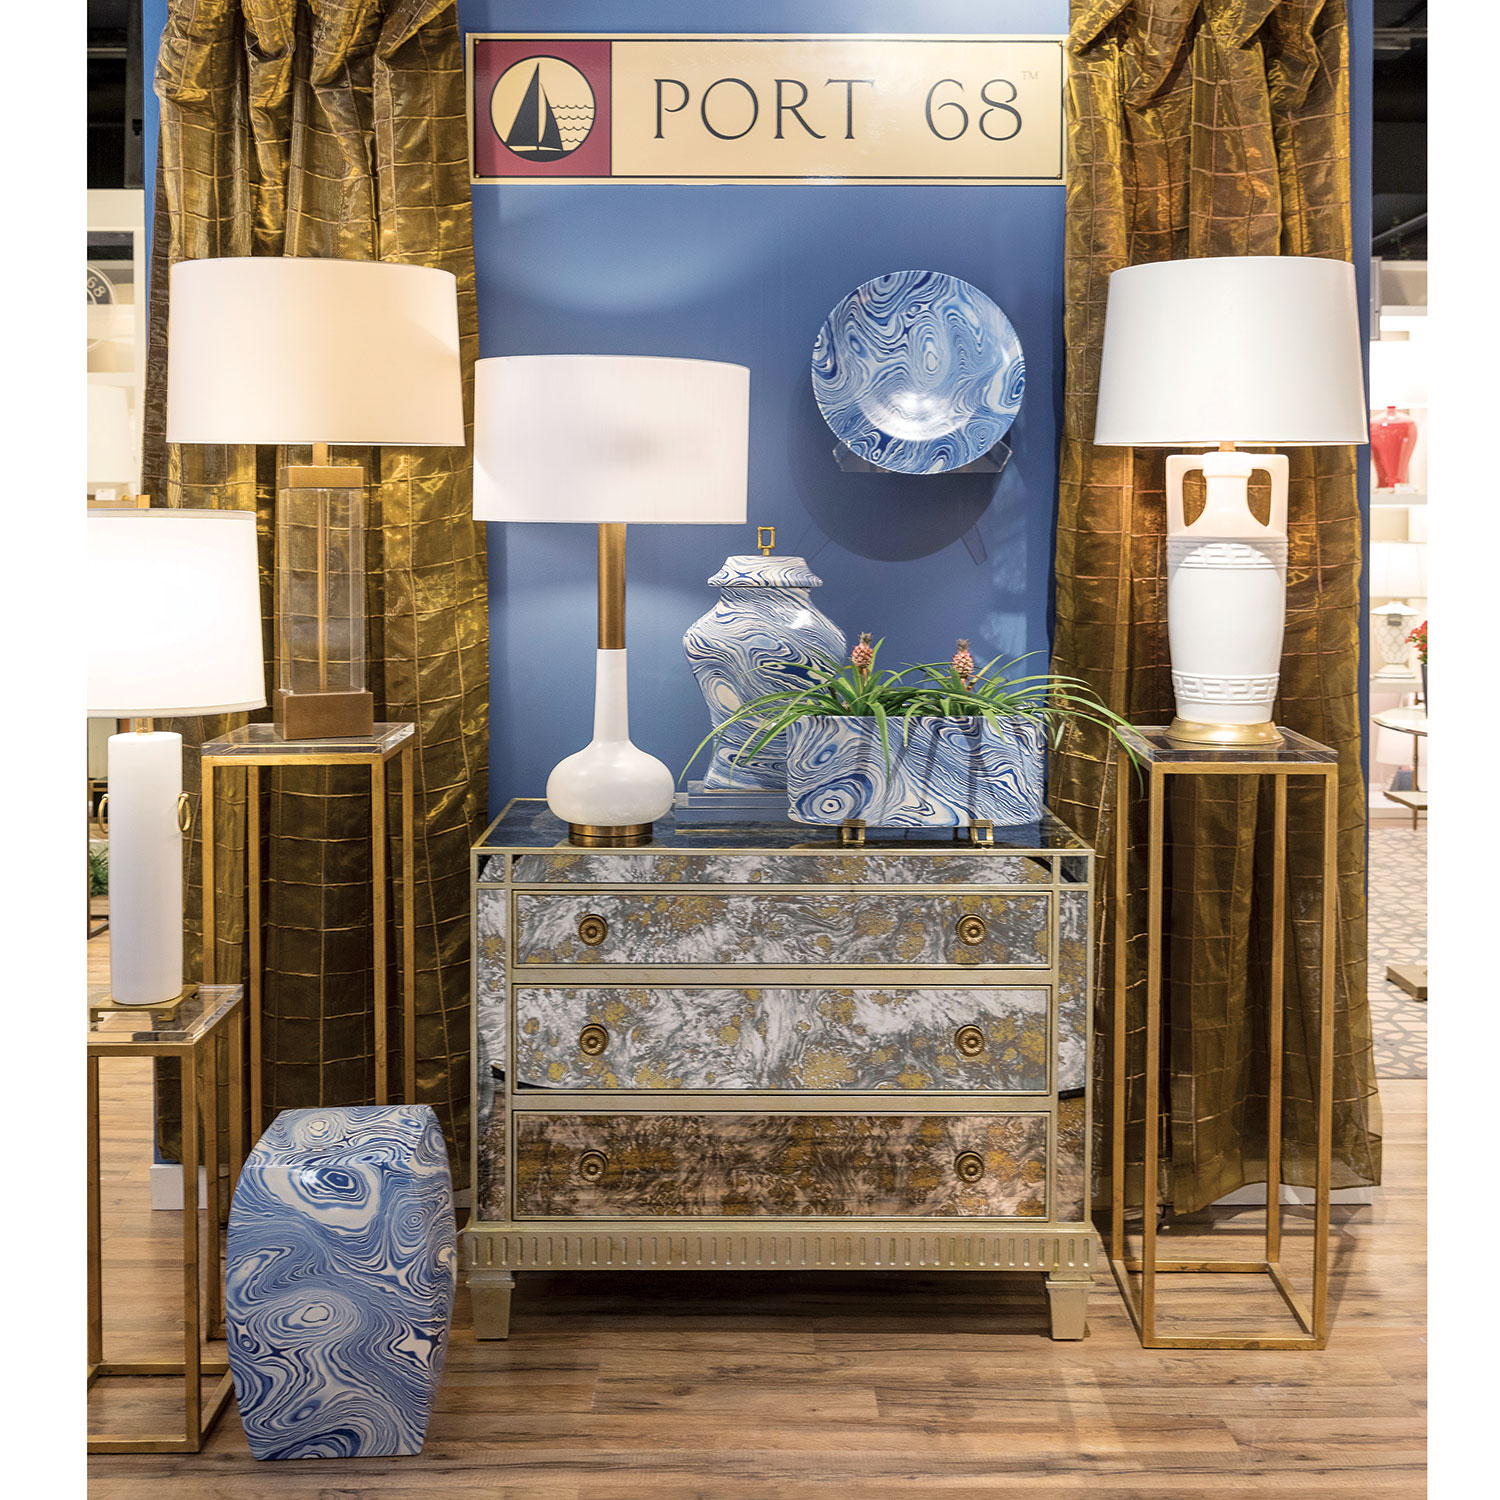 Port68store Port 68 Brings Designer Driven Product From